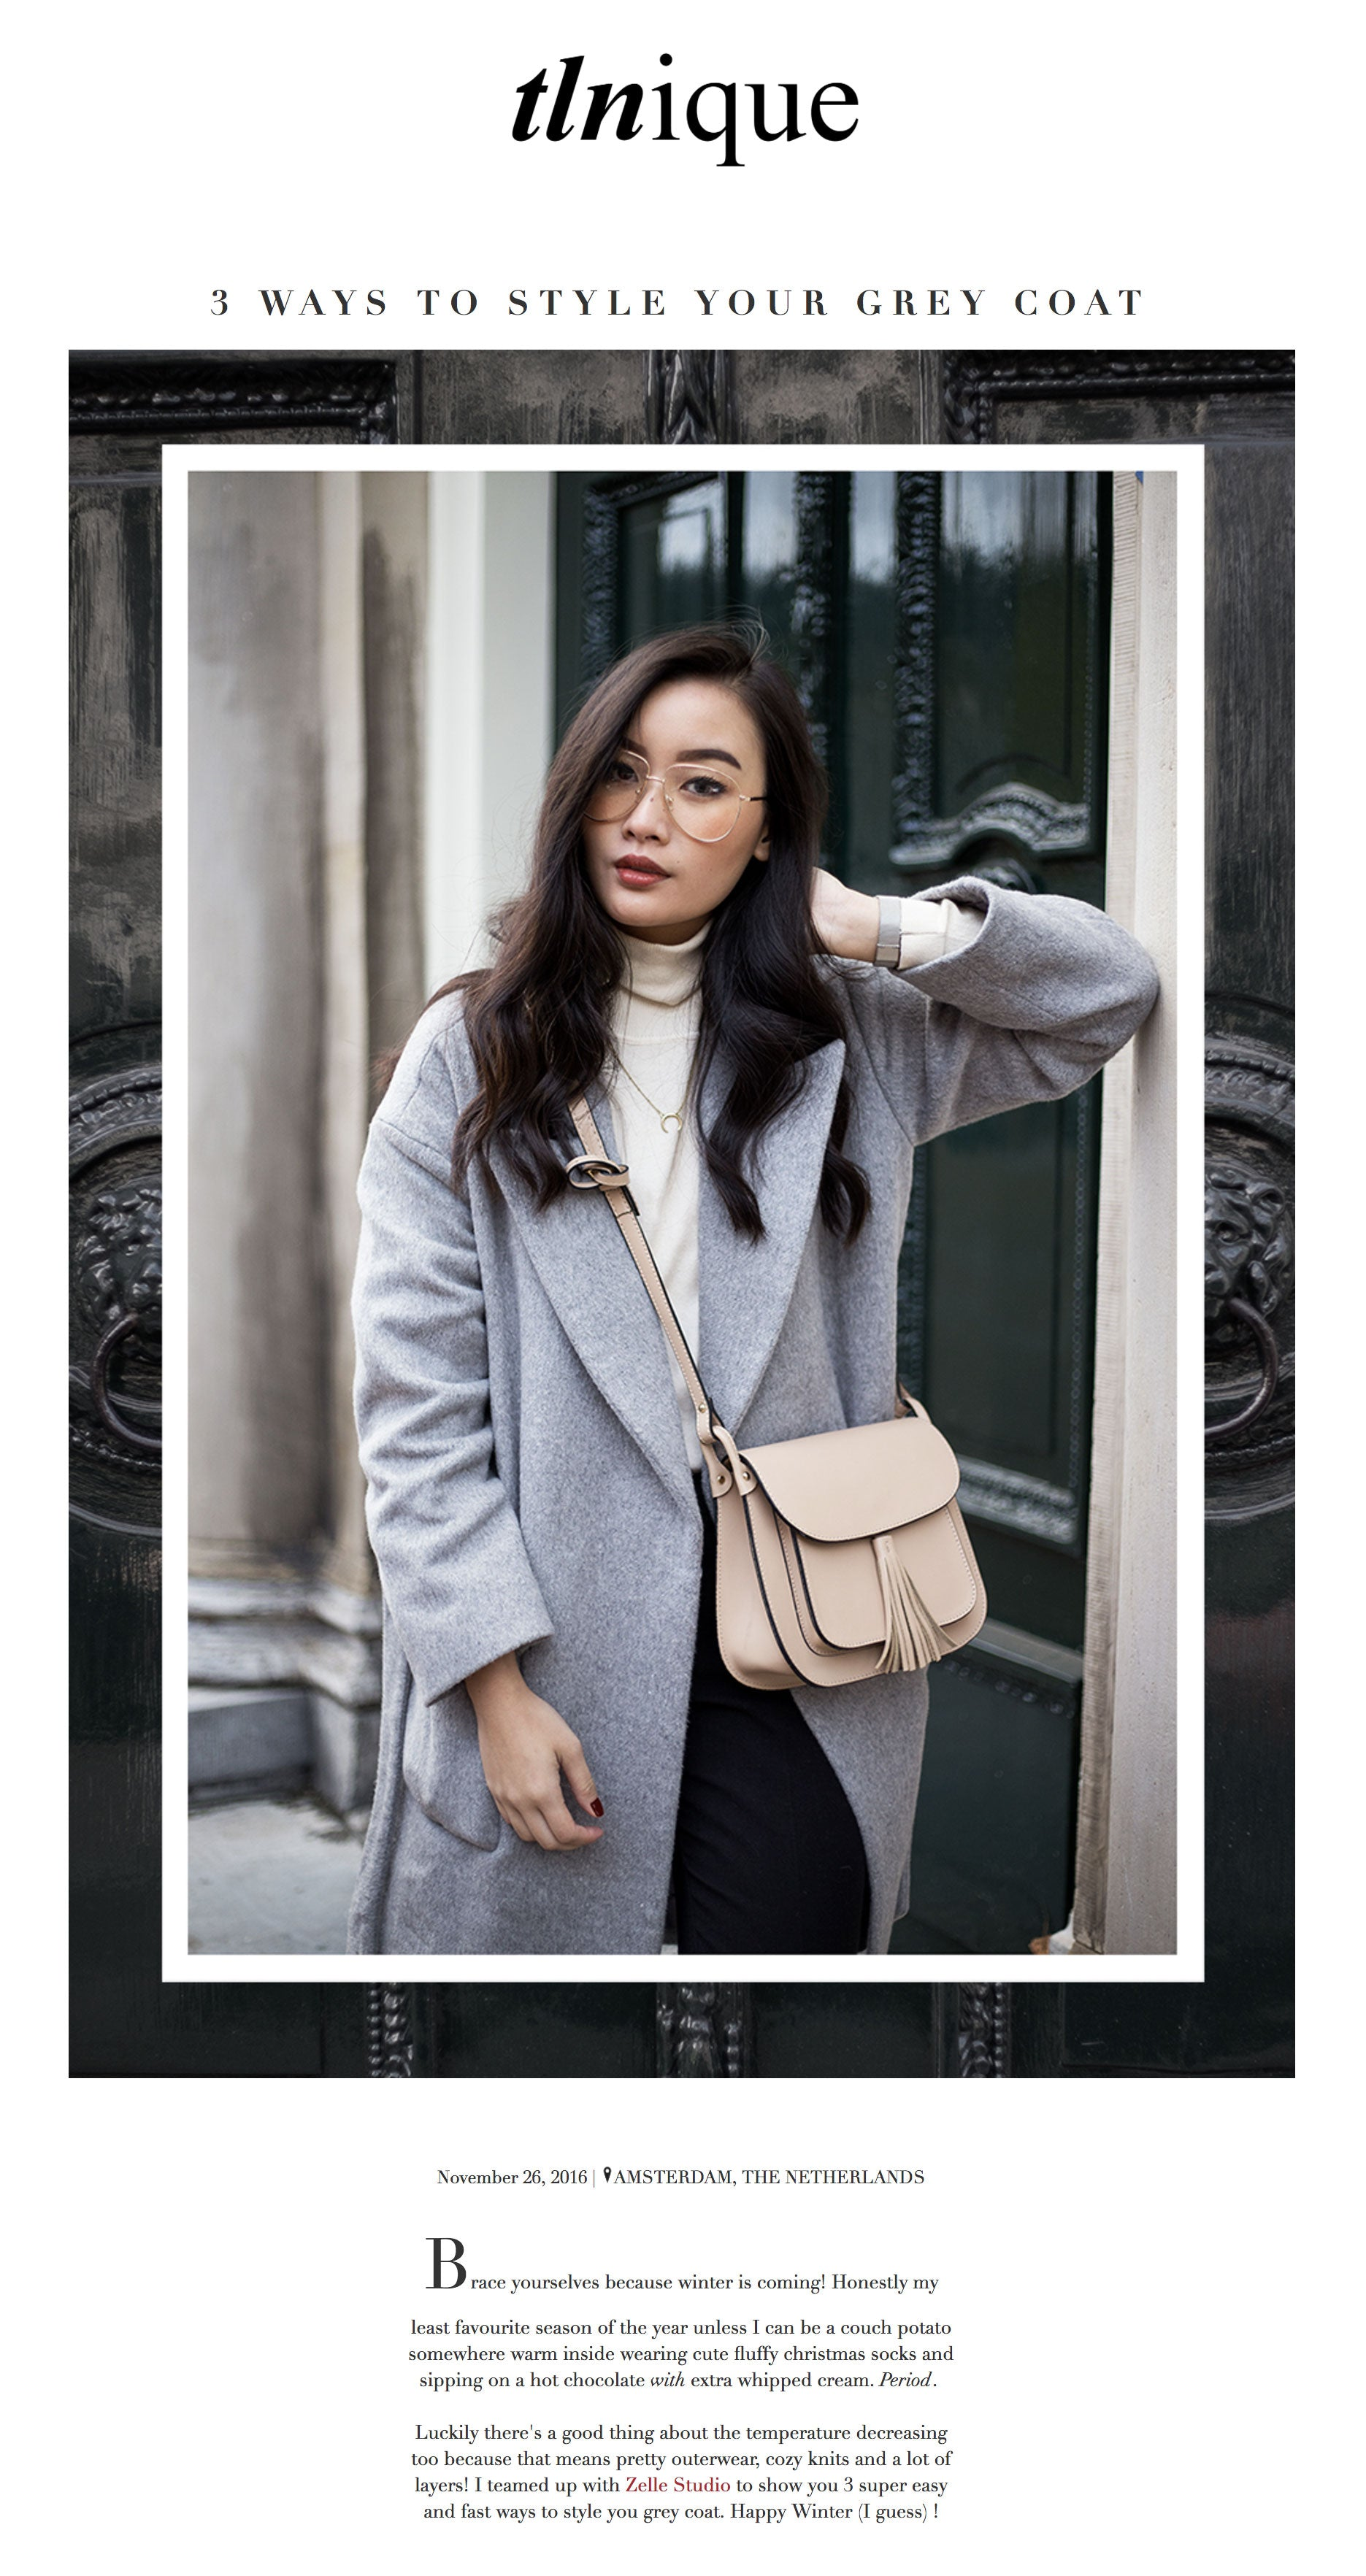 Tlnique: 3 Ways To Style Your Grey Coat